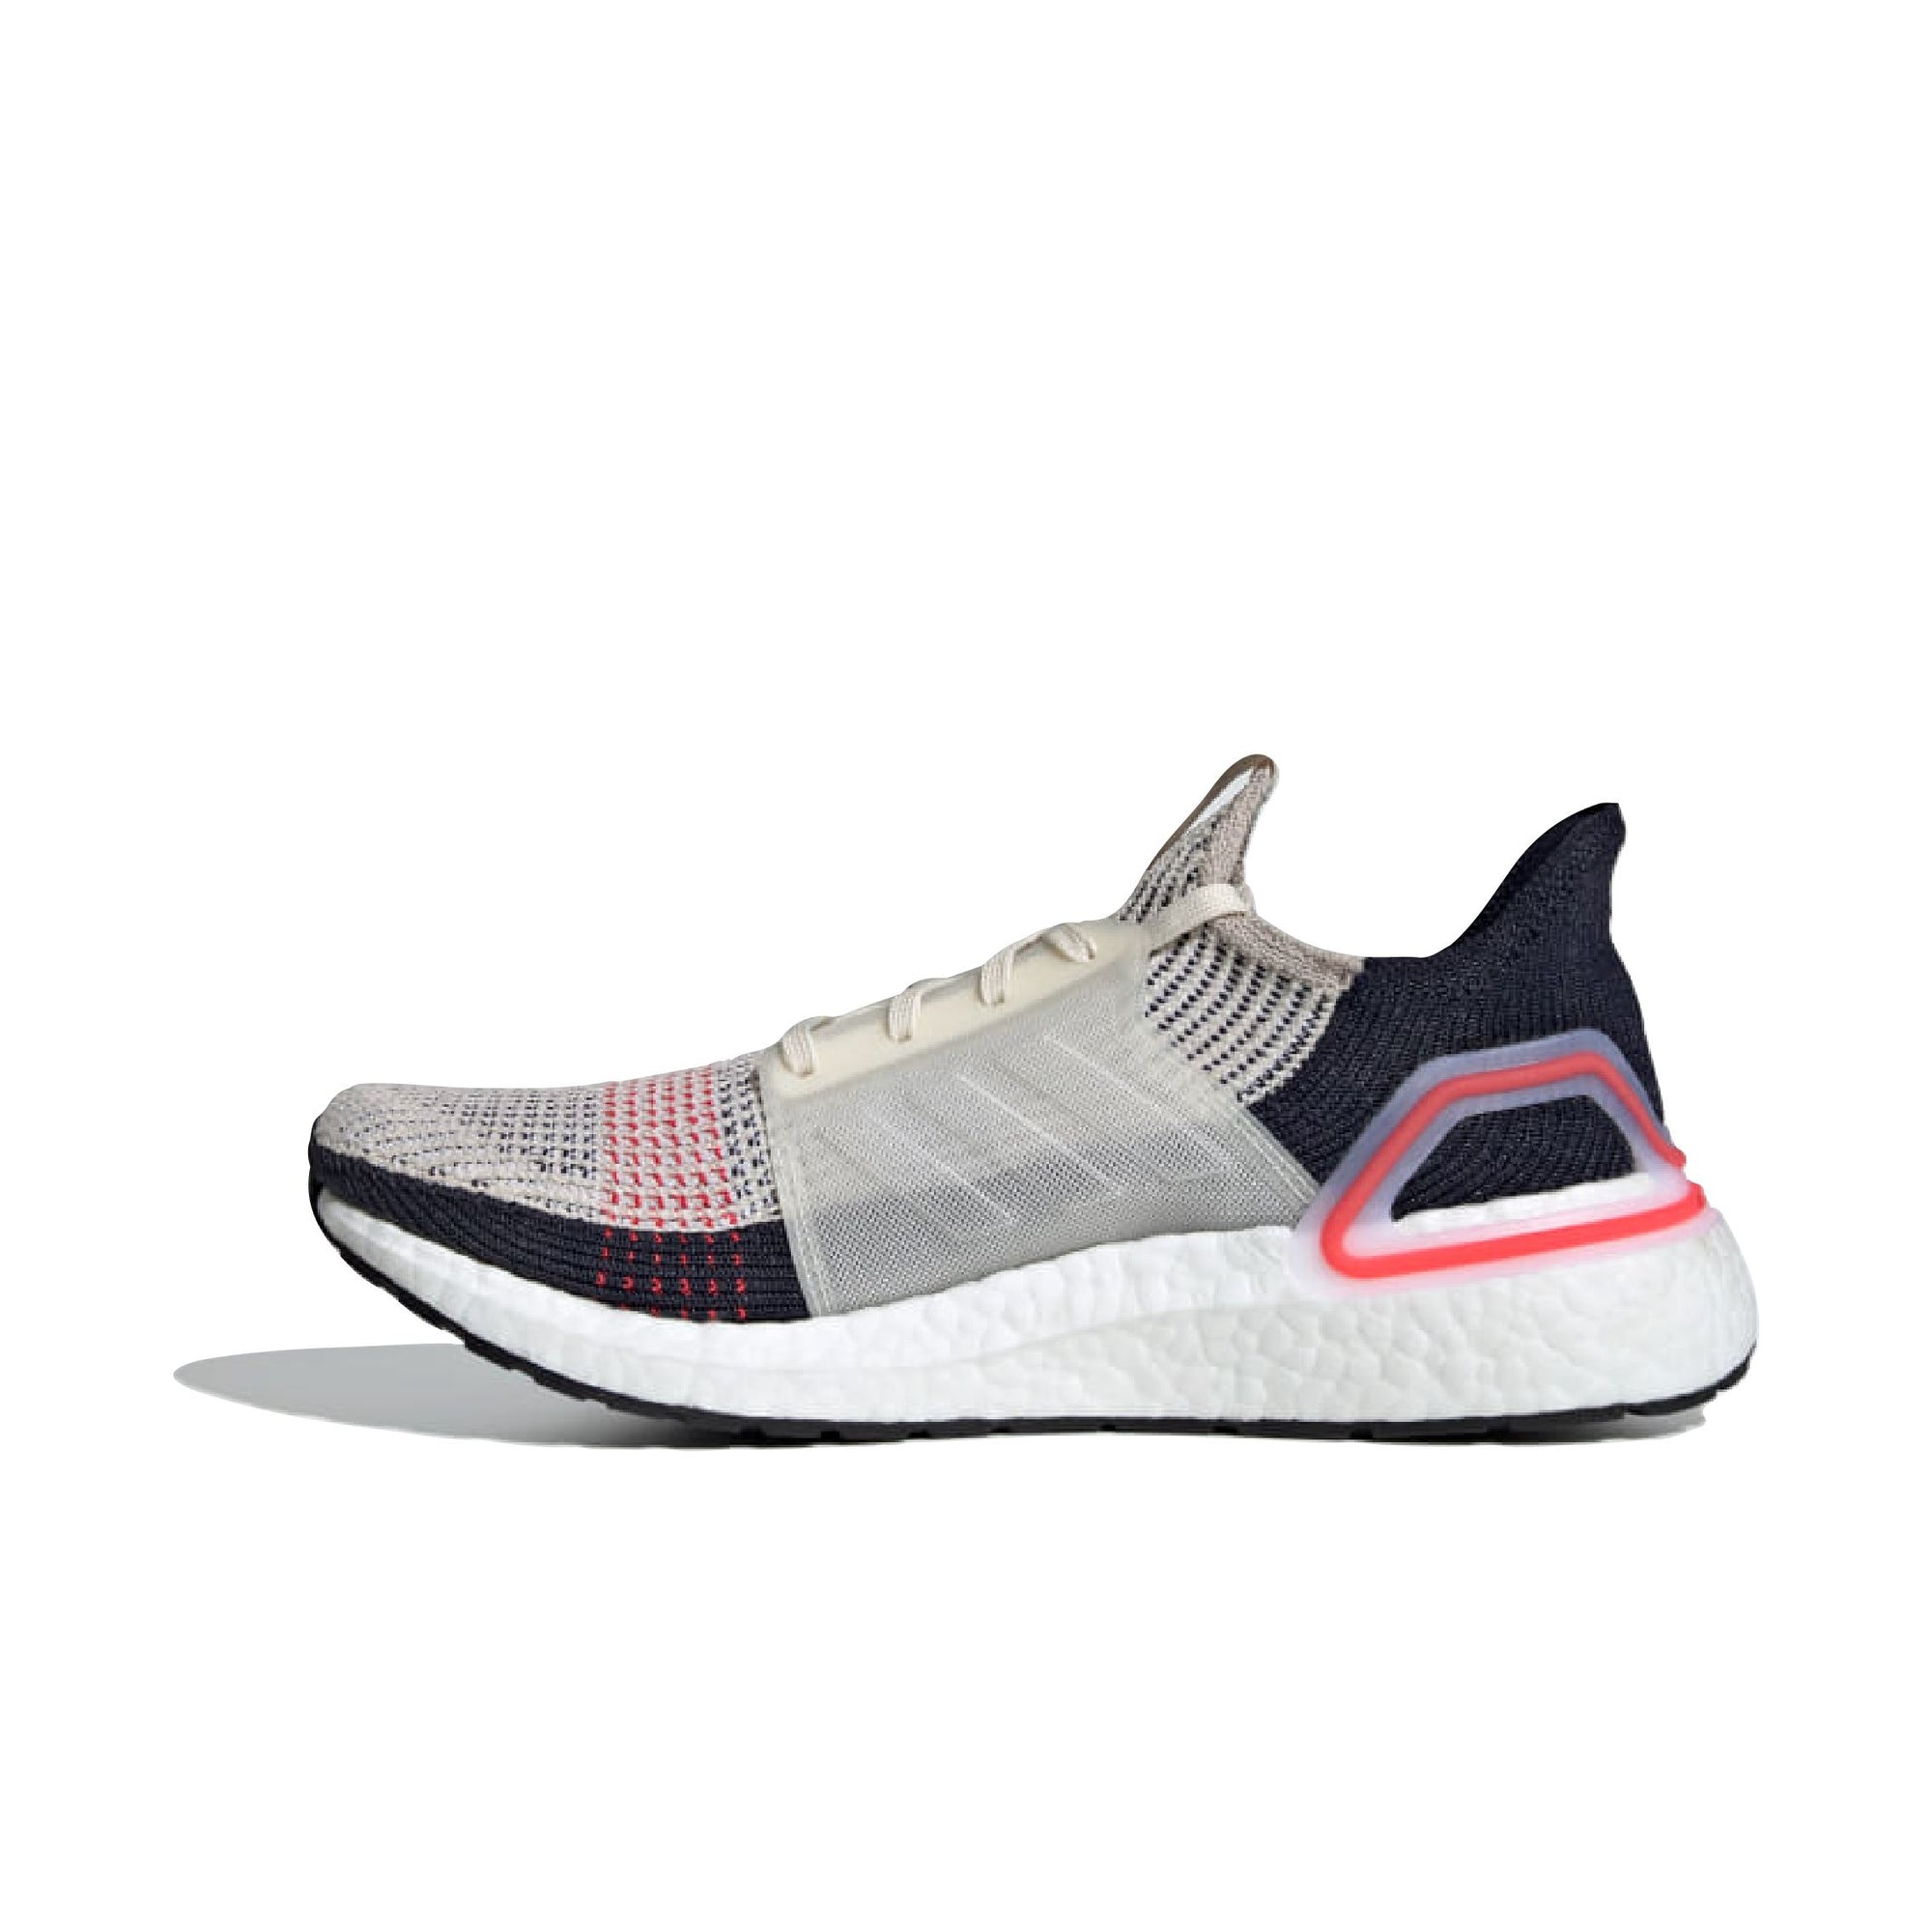 Adidas Ultraboost 19 (Women) - Kasut Marketplace